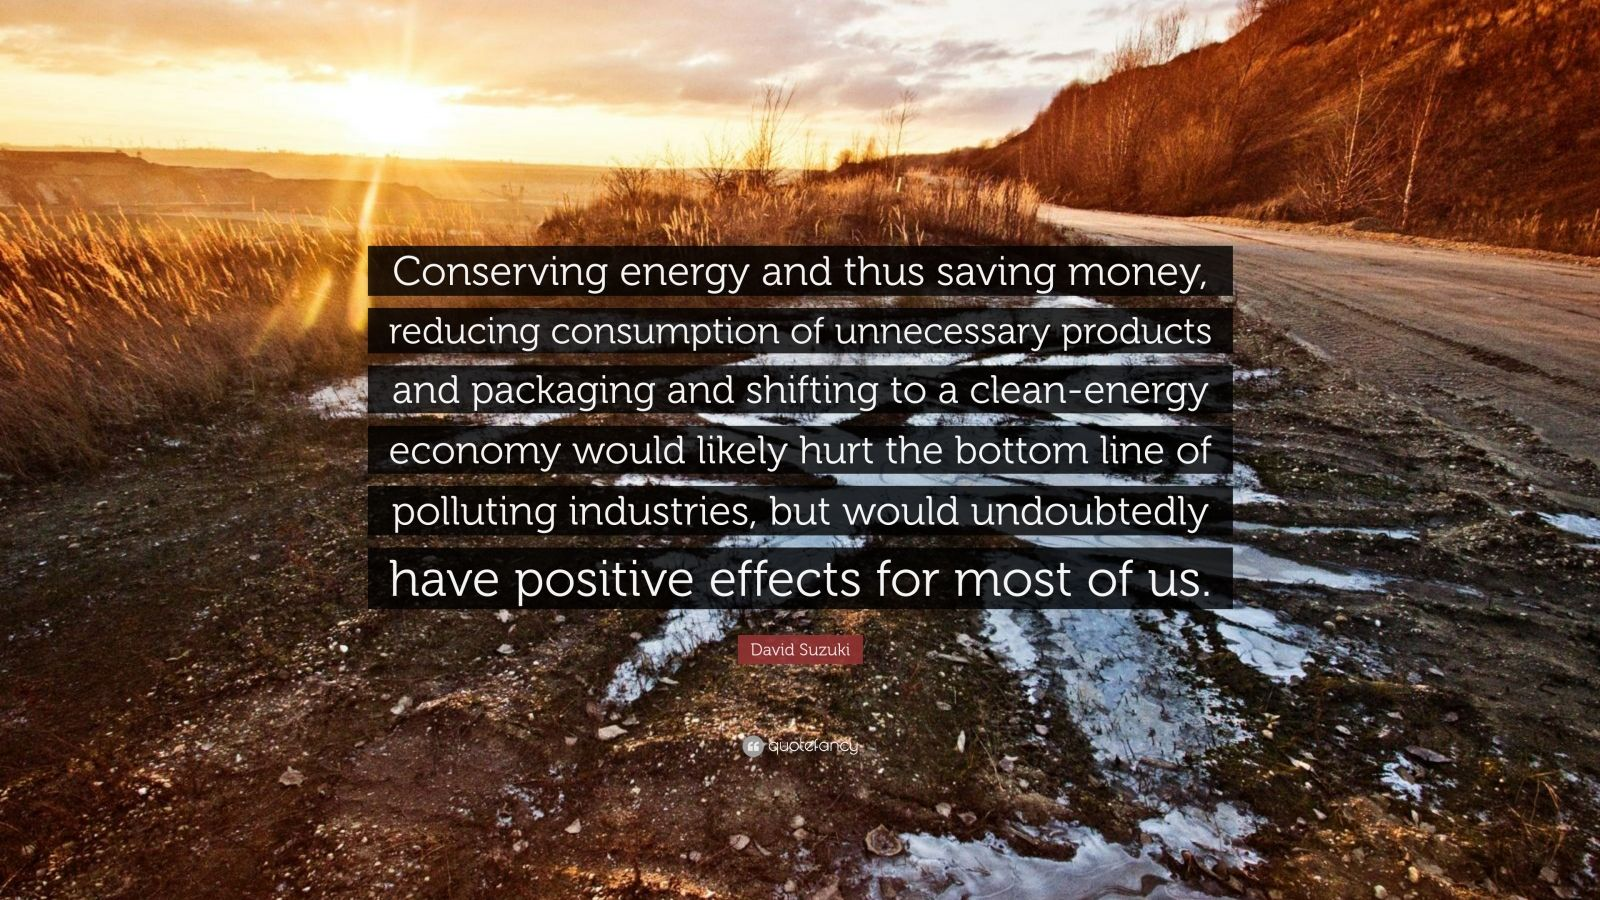 "David Suzuki Quote: ""Conserving energy and thus saving money, reducing consumption of unnecessary products and packaging and shifting to a clean-energy economy would likely hurt the bottom line of polluting industries, but would undoubtedly have positive effects for most of us."""